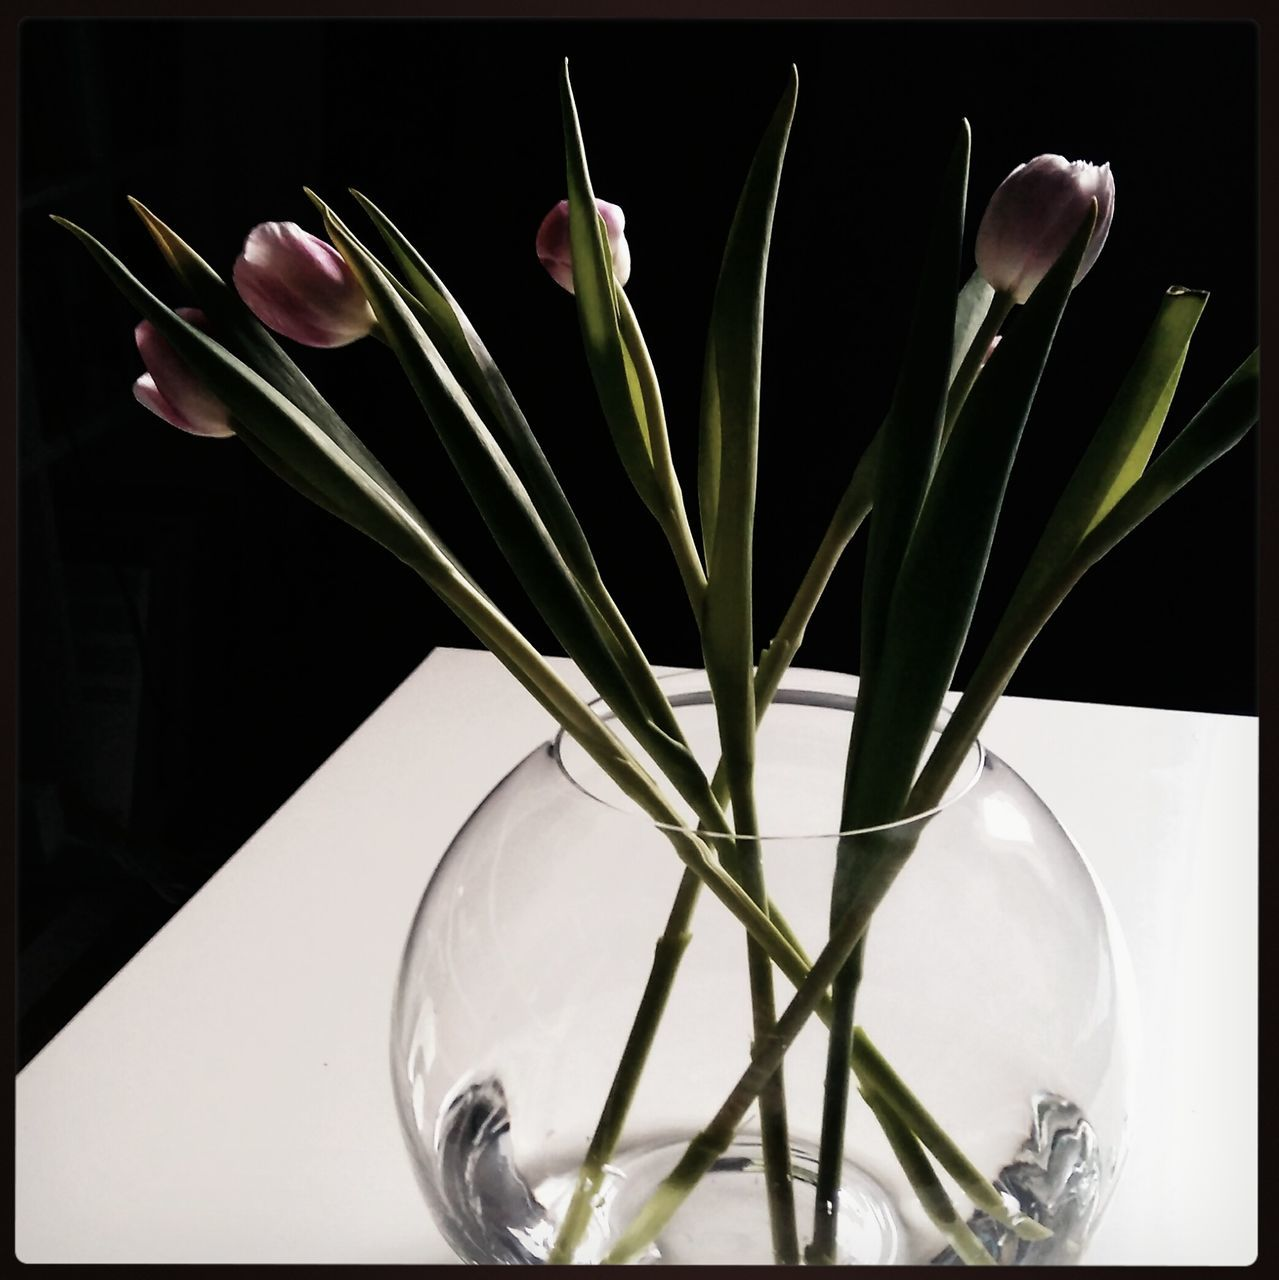 vase, flower, indoors, plant, tulip, growth, no people, close-up, freshness, flower head, nature